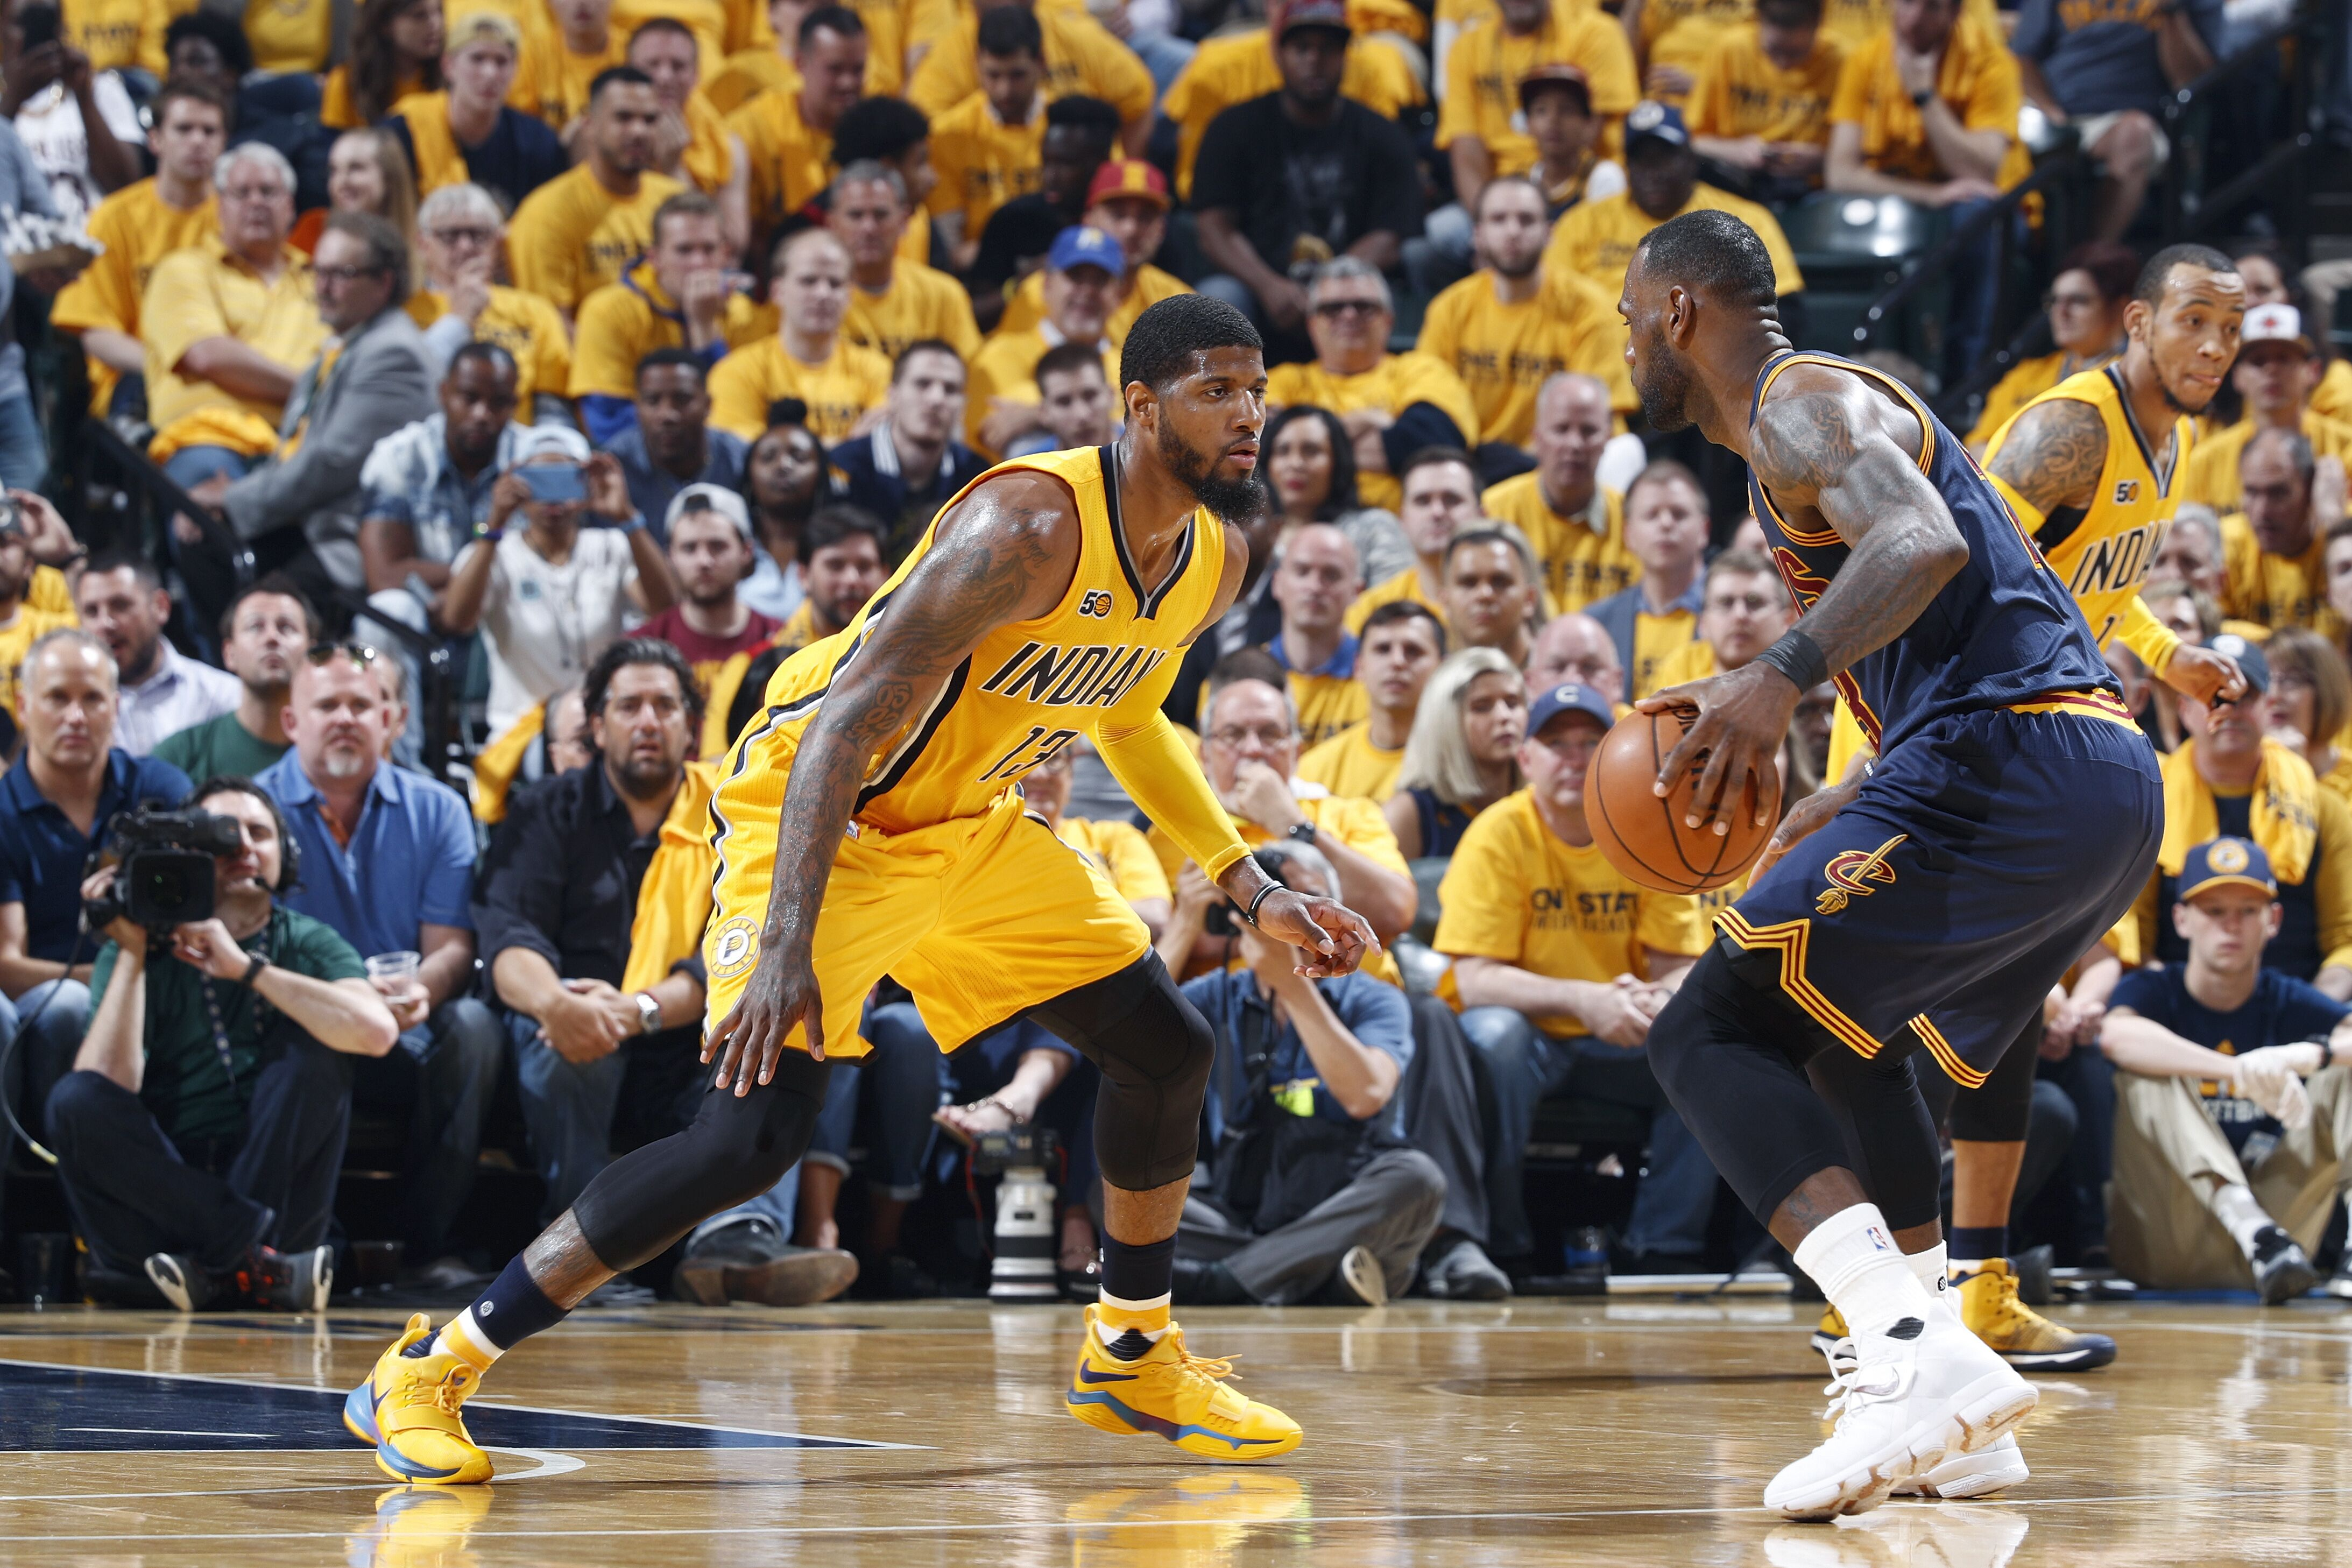 NBA Schedule 2017-18: When does Paul George play the Pacers?